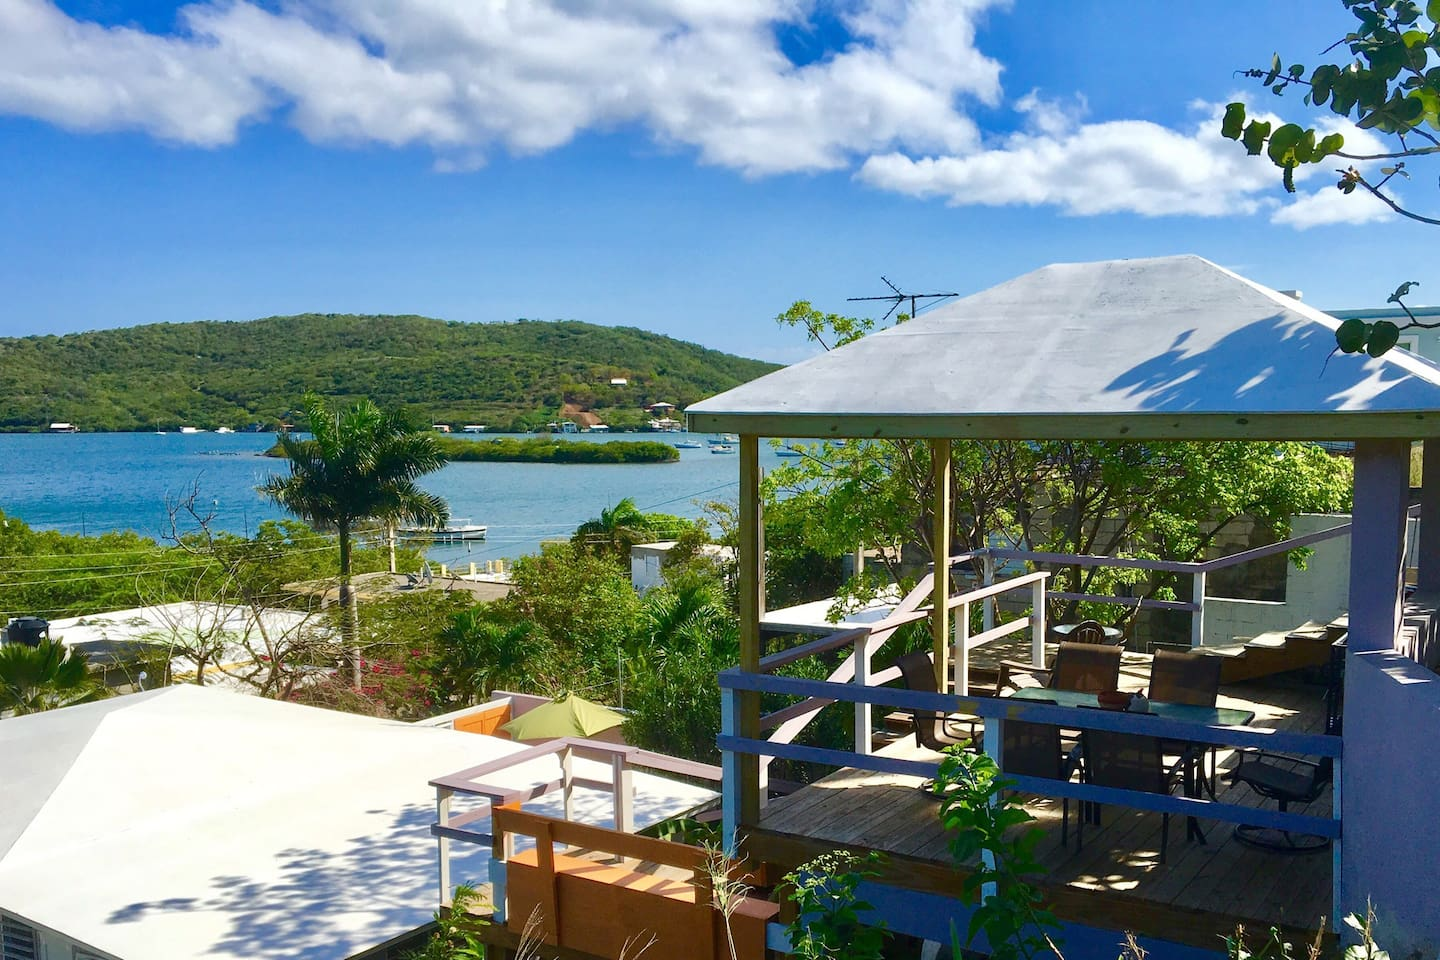 Our deck Gazebo offers an amazing view